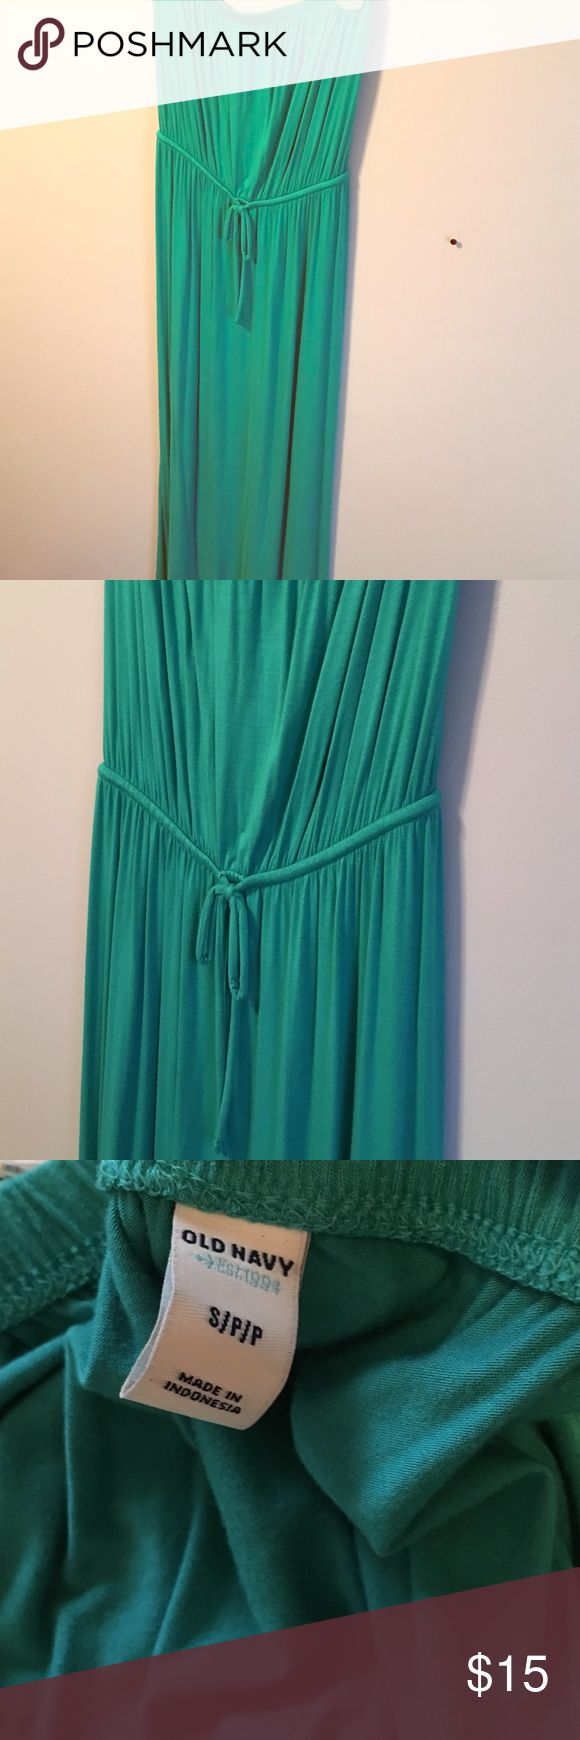 Turquoise Strapless Maxi Dress Strapless turquoise maxi dress with drawstring waistline; size small; brand: Old Navy; only worn a few times!! Perfect for summer; can be dressed up with a fun necklace! Old Navy Dresses Maxi